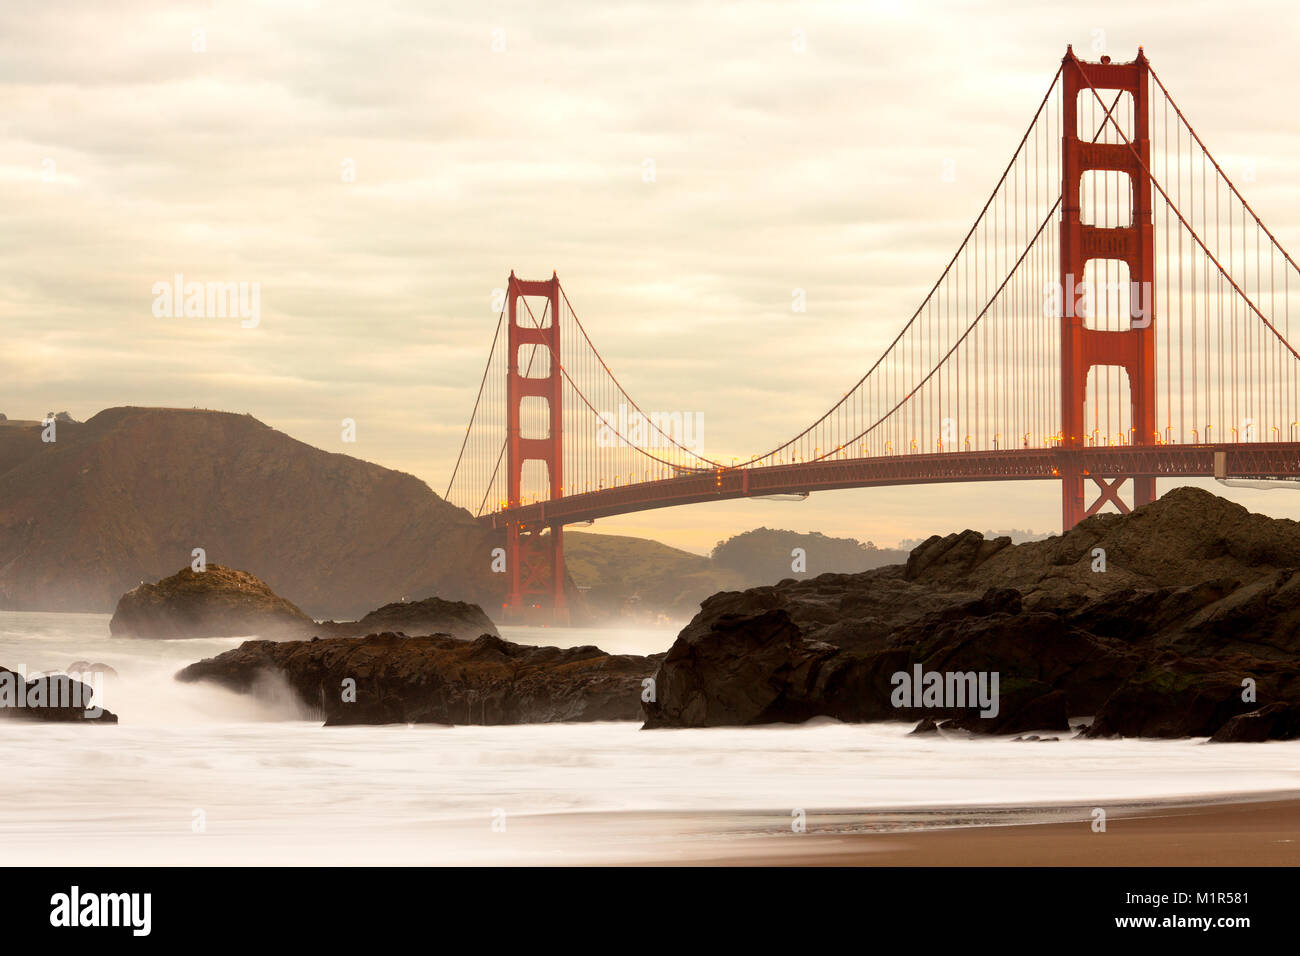 Puente Golden Gate de Baker Beach, San Francisco, California, EE.UU. Imagen De Stock